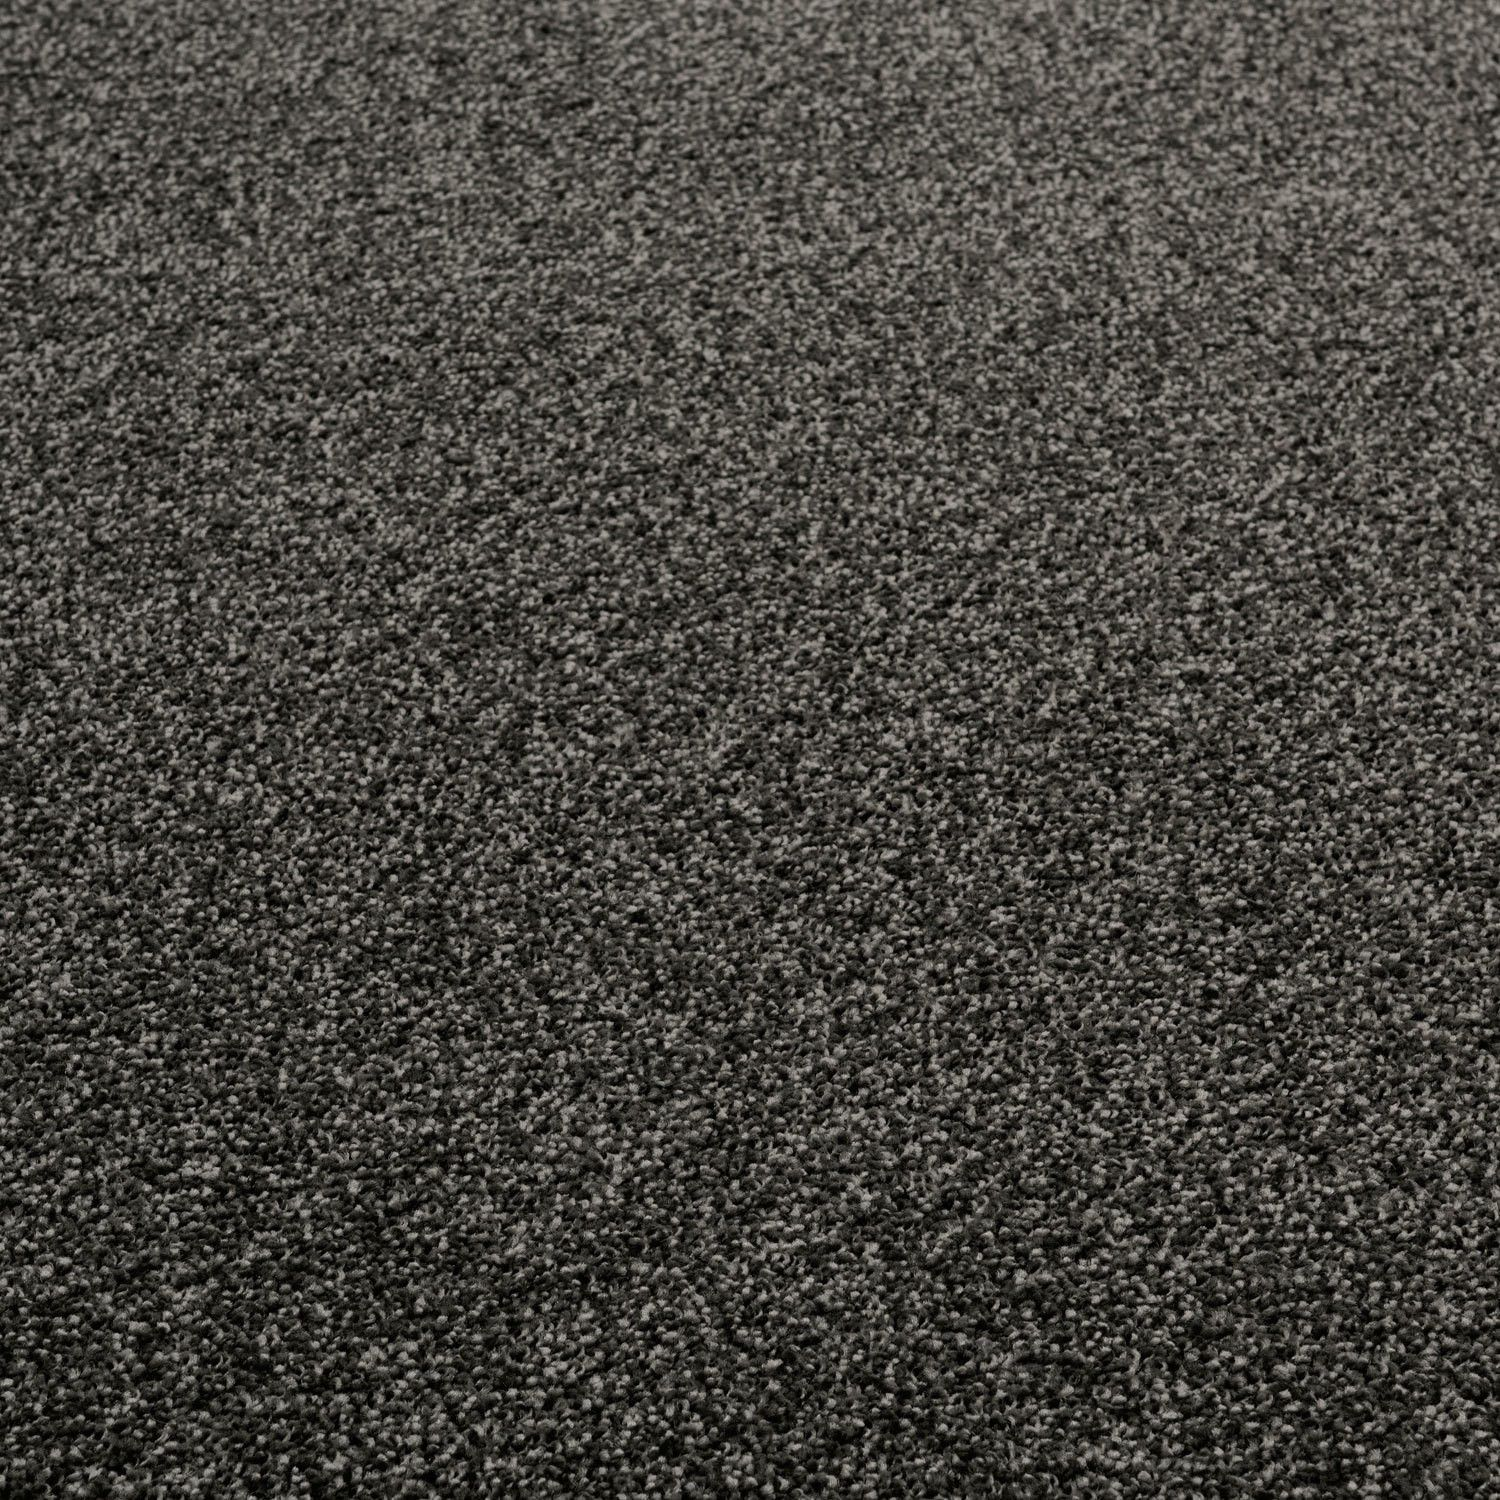 dark grey carpet texture. Delighful Grey Image Result For Dark Grey Carpet Texture Inside Dark Grey Carpet Texture T